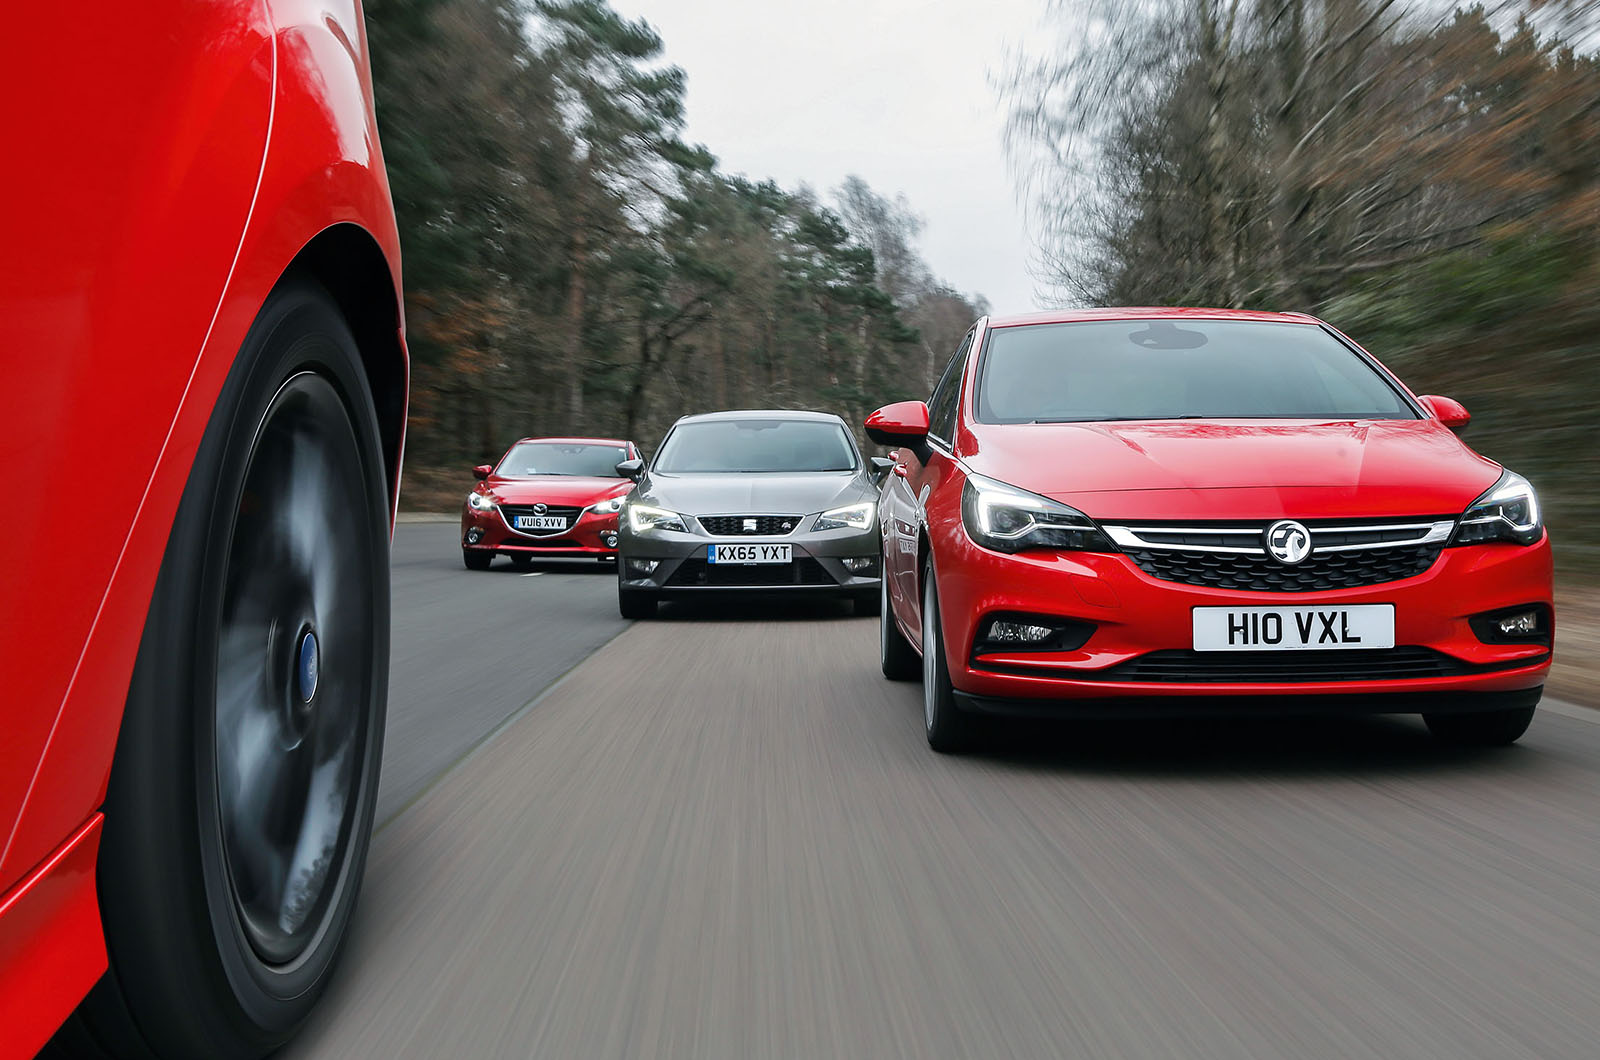 Seat leon ford focus vauxhall astra versus mazda 3 warm hatch group test autocar